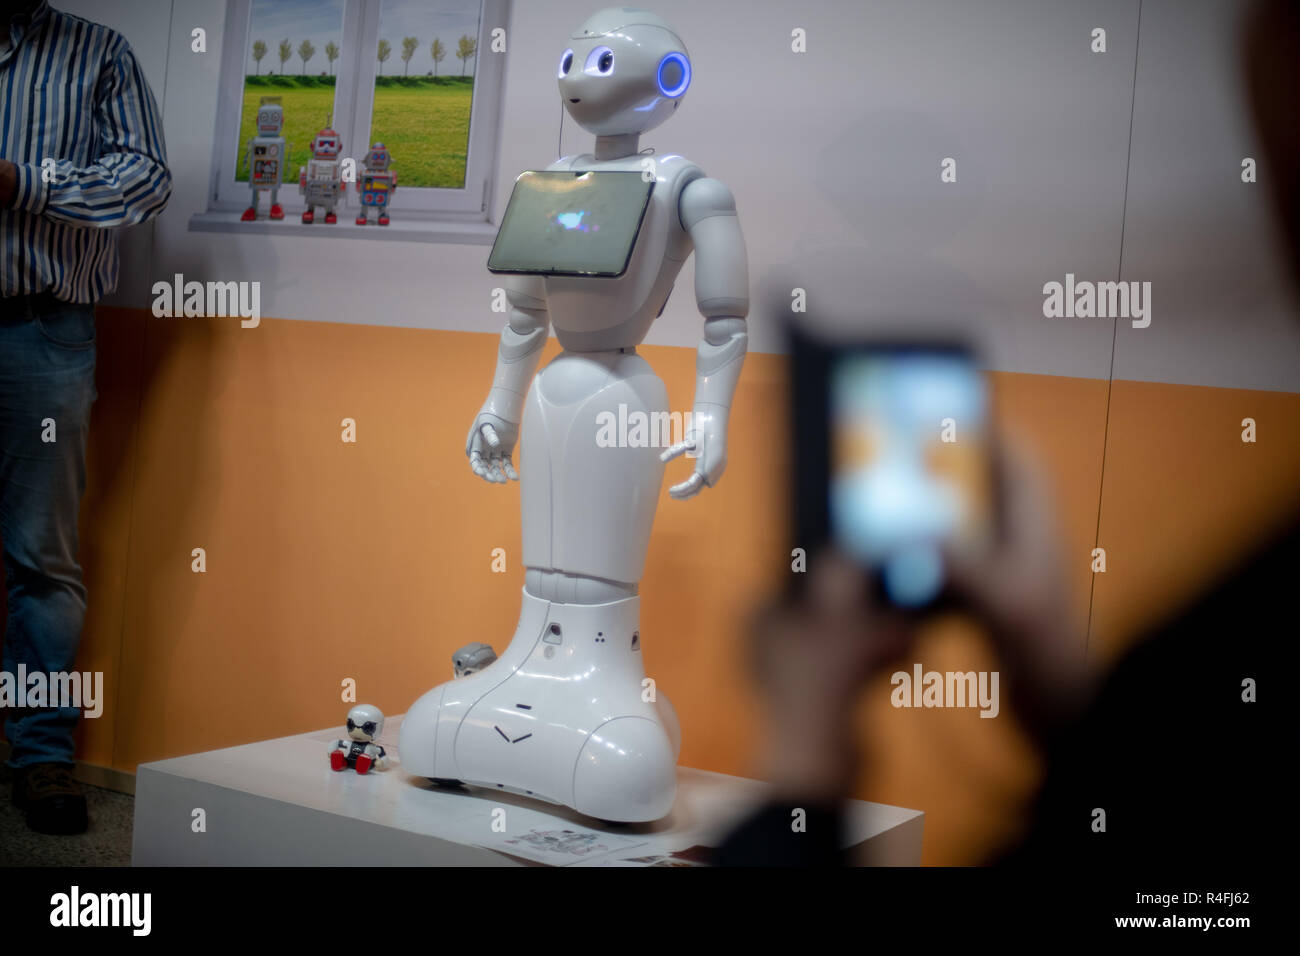 Robotics - Stock Image